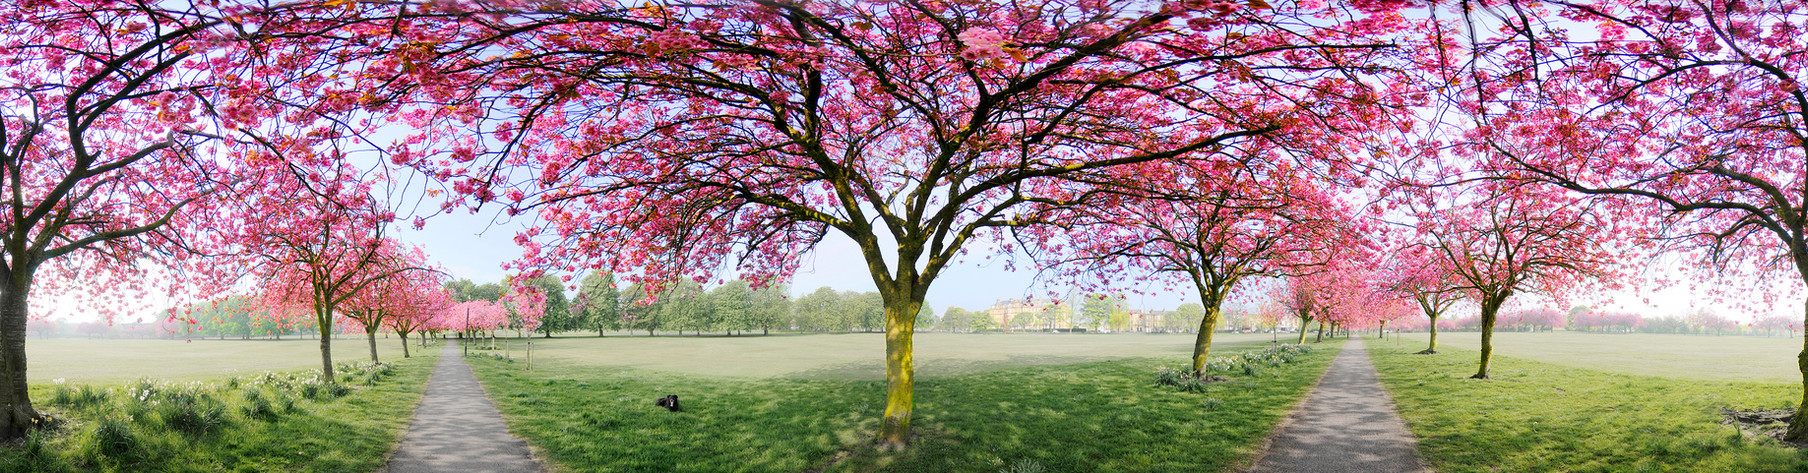 Cherry Tree Walk Harrogate at Spring Time 360 Panorama by Sirastudio. Photographers in Harrogate.